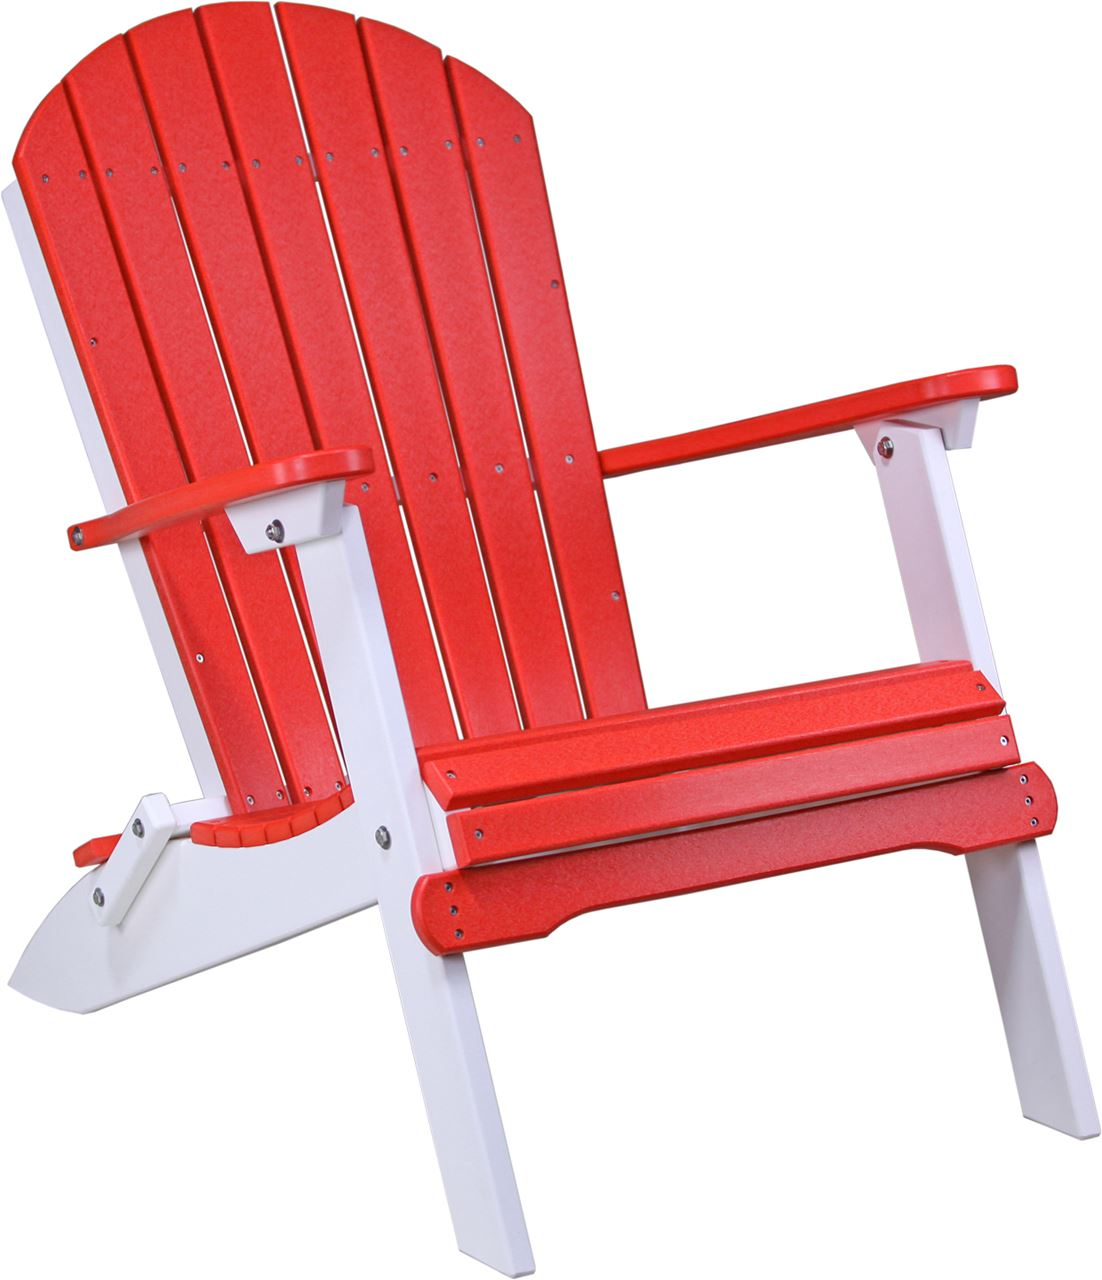 Foldable Adirondack Chair Four Seasons Furnishings Amish Made Furniture Luxcraft